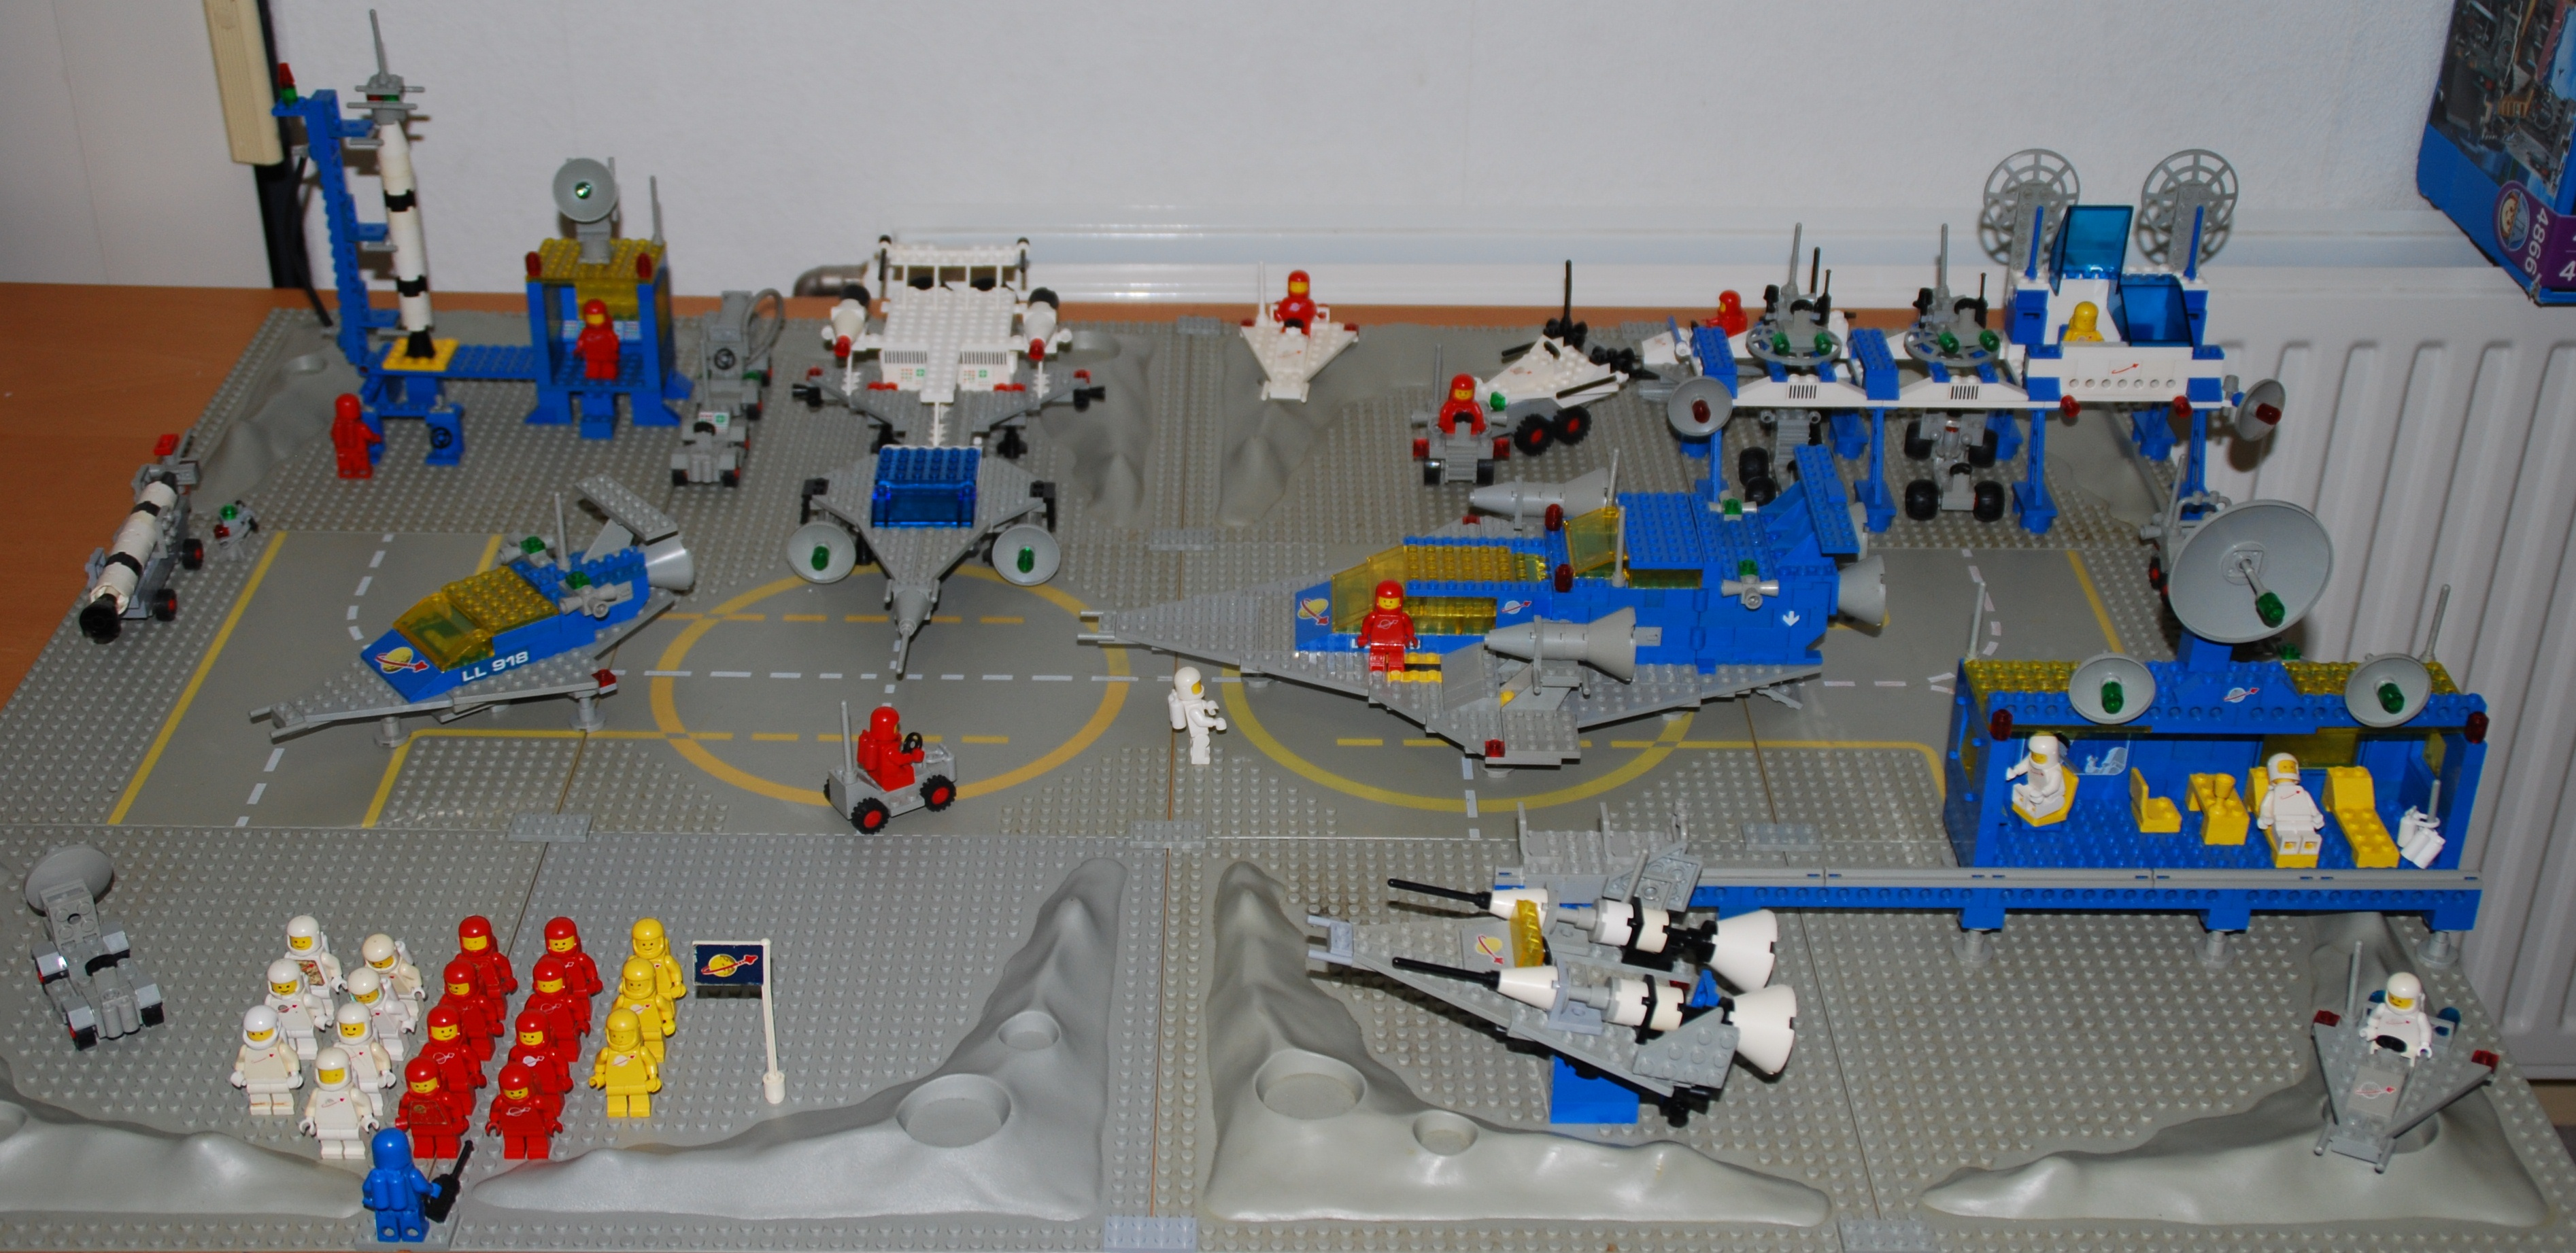 Description lego space sets